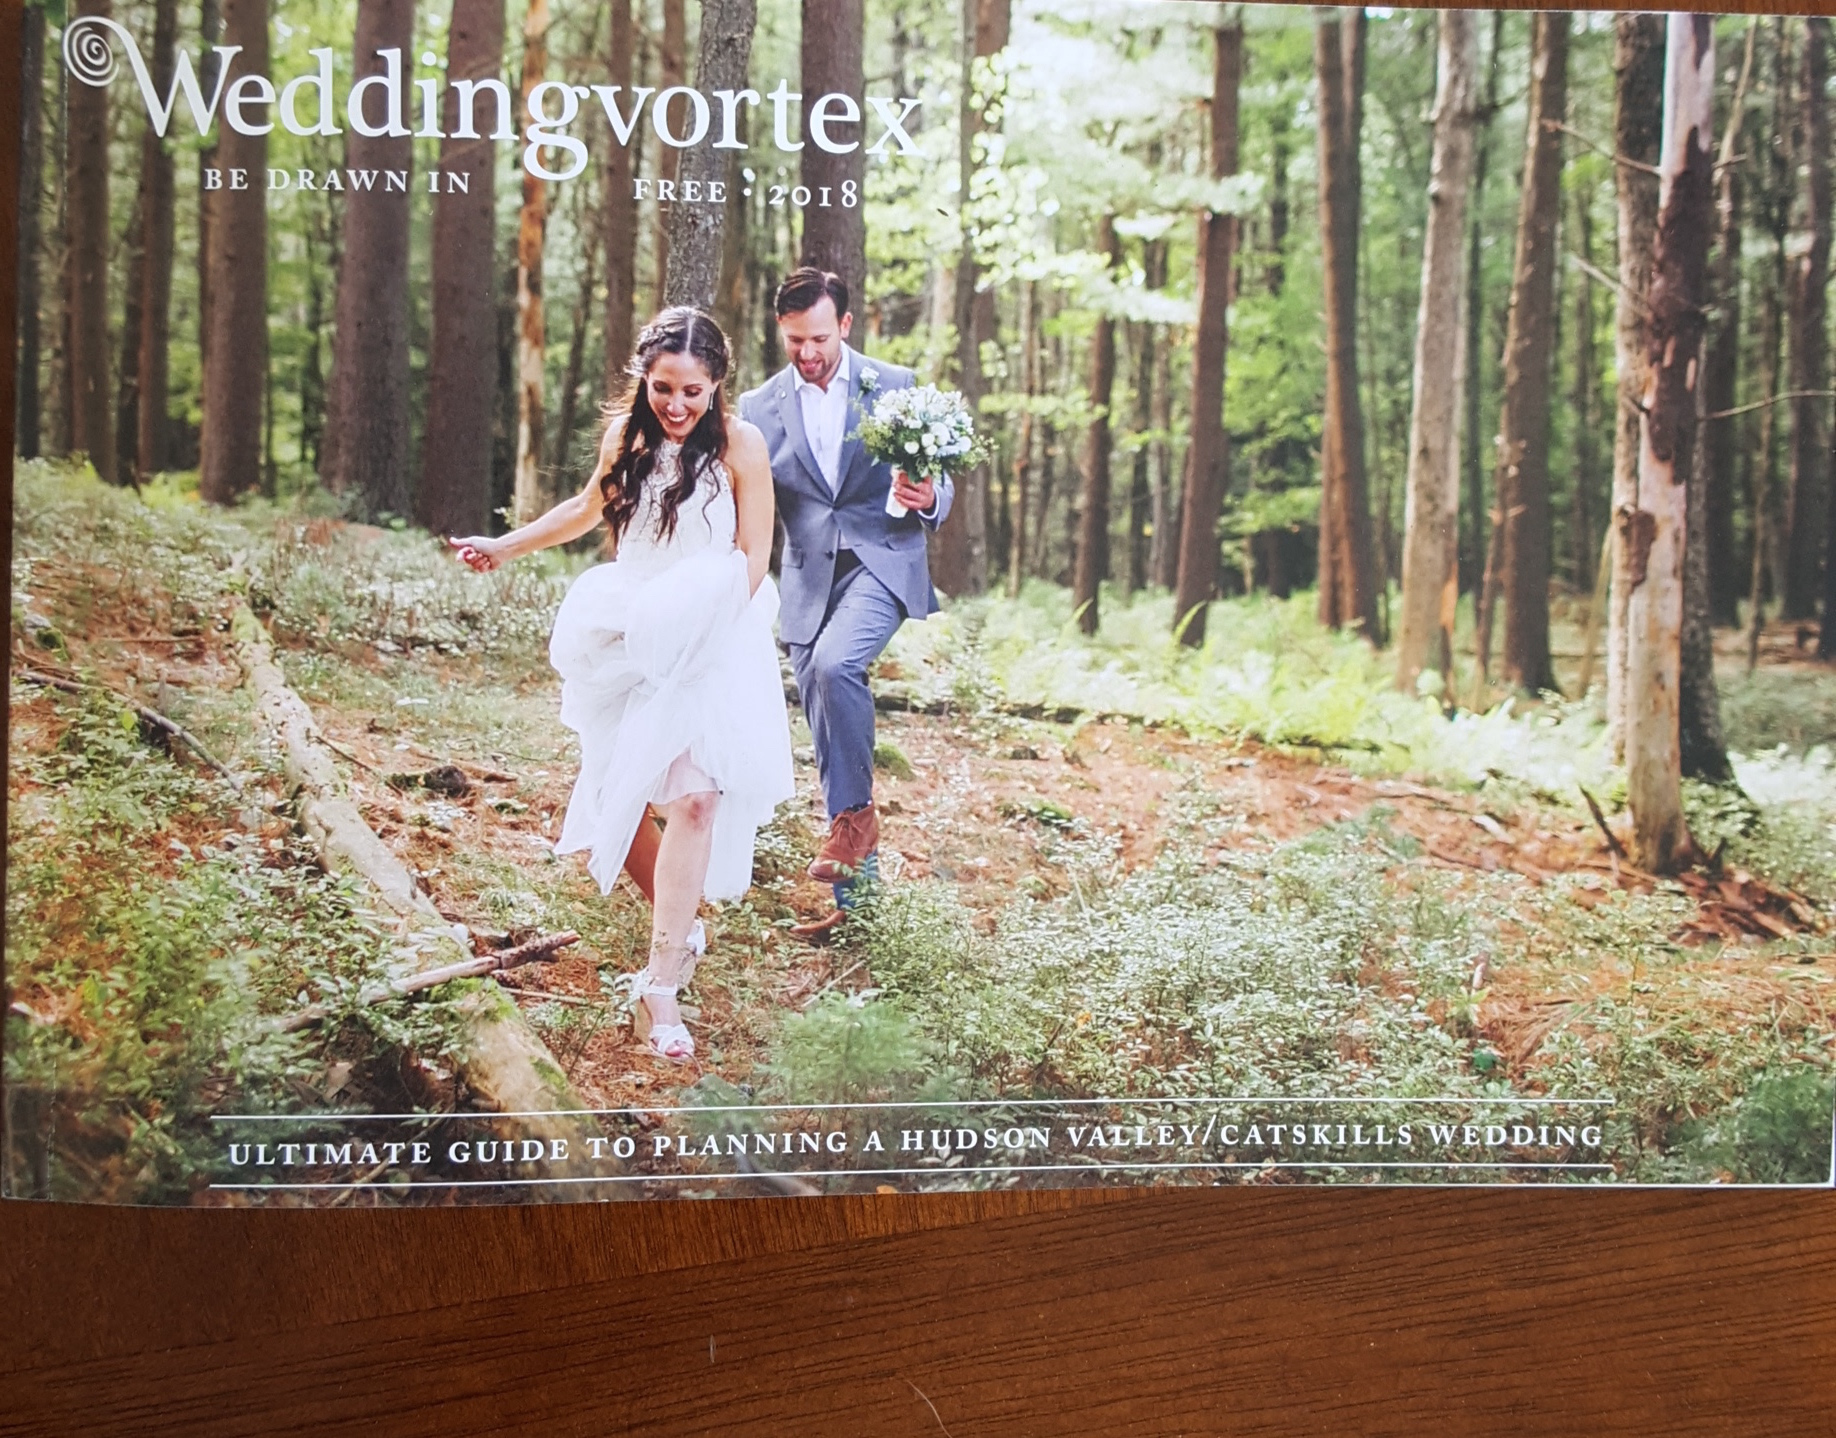 Pick up a copy of this free magazine at many local shops and restaurants. Or browse through the 2018 issue at  WeddingVortex.com .